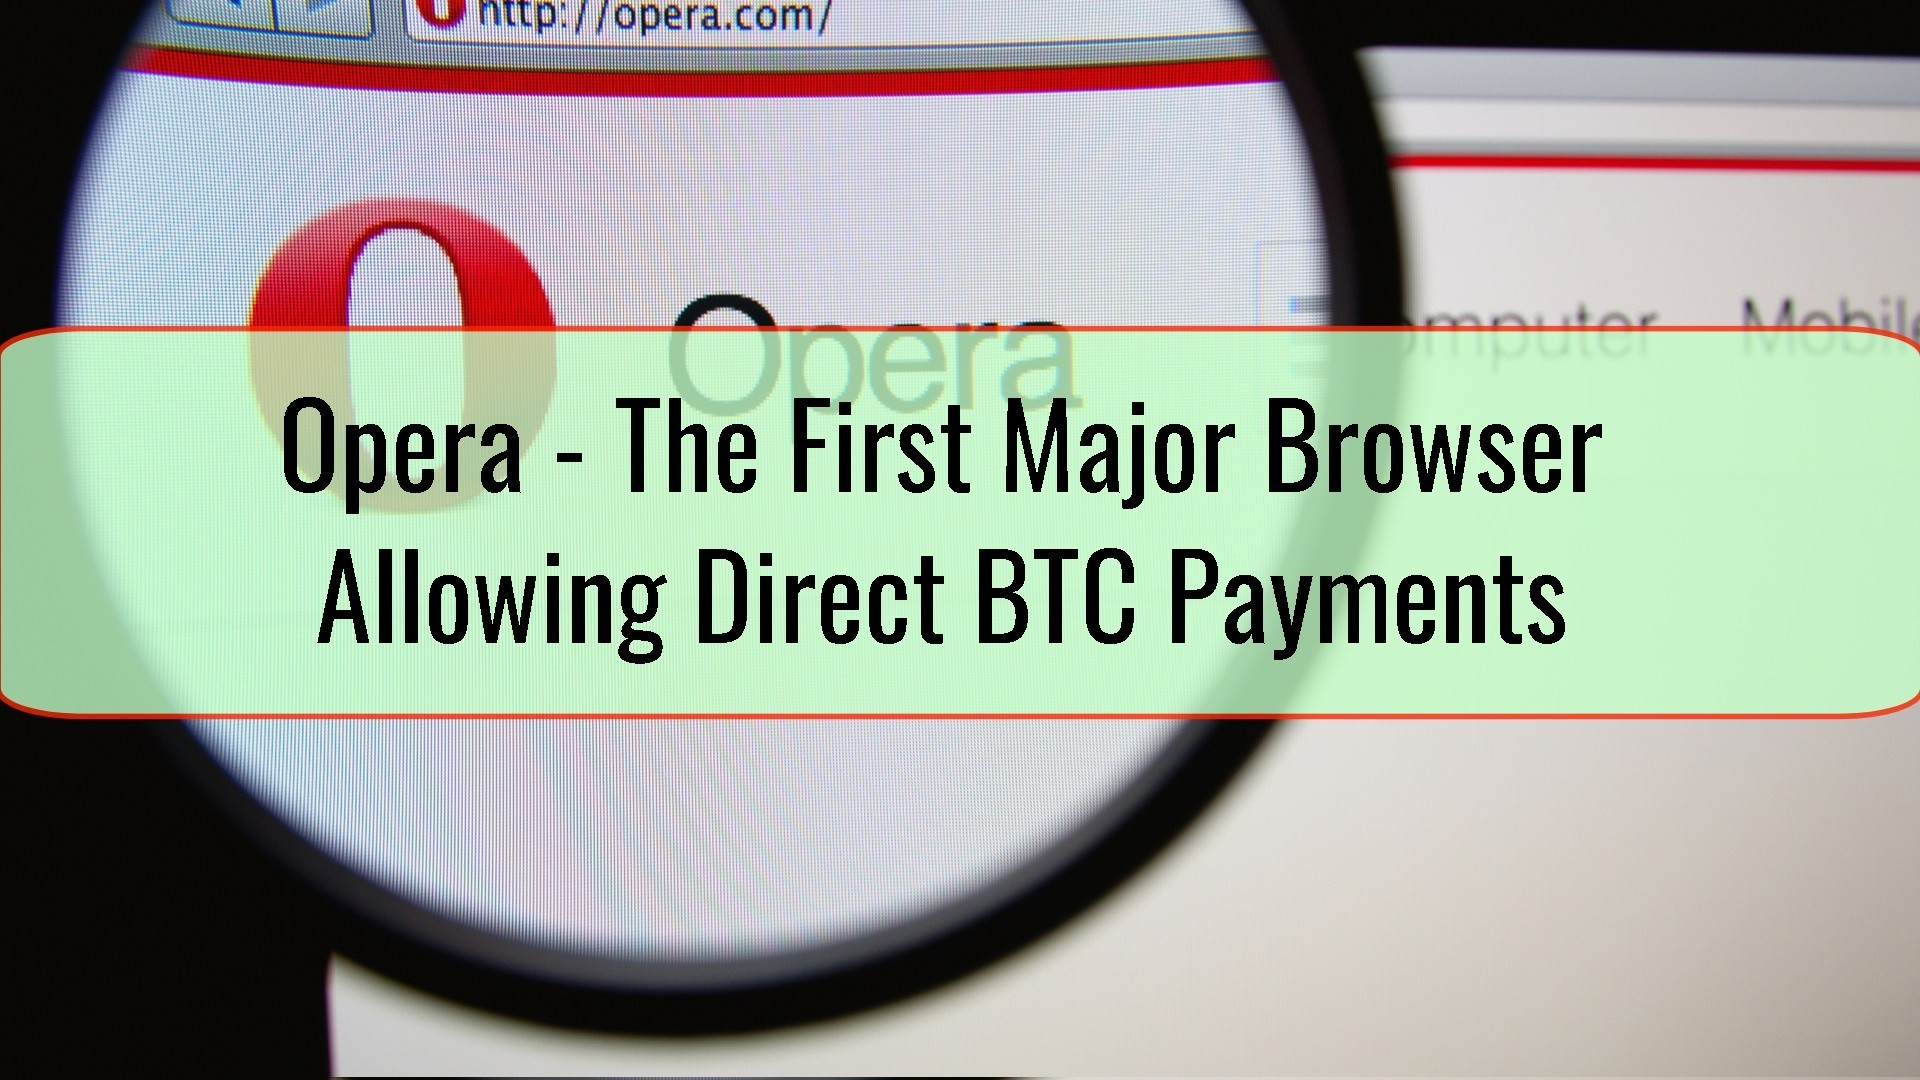 Opera - The First Major Browser Allowing Direct BTC Payments